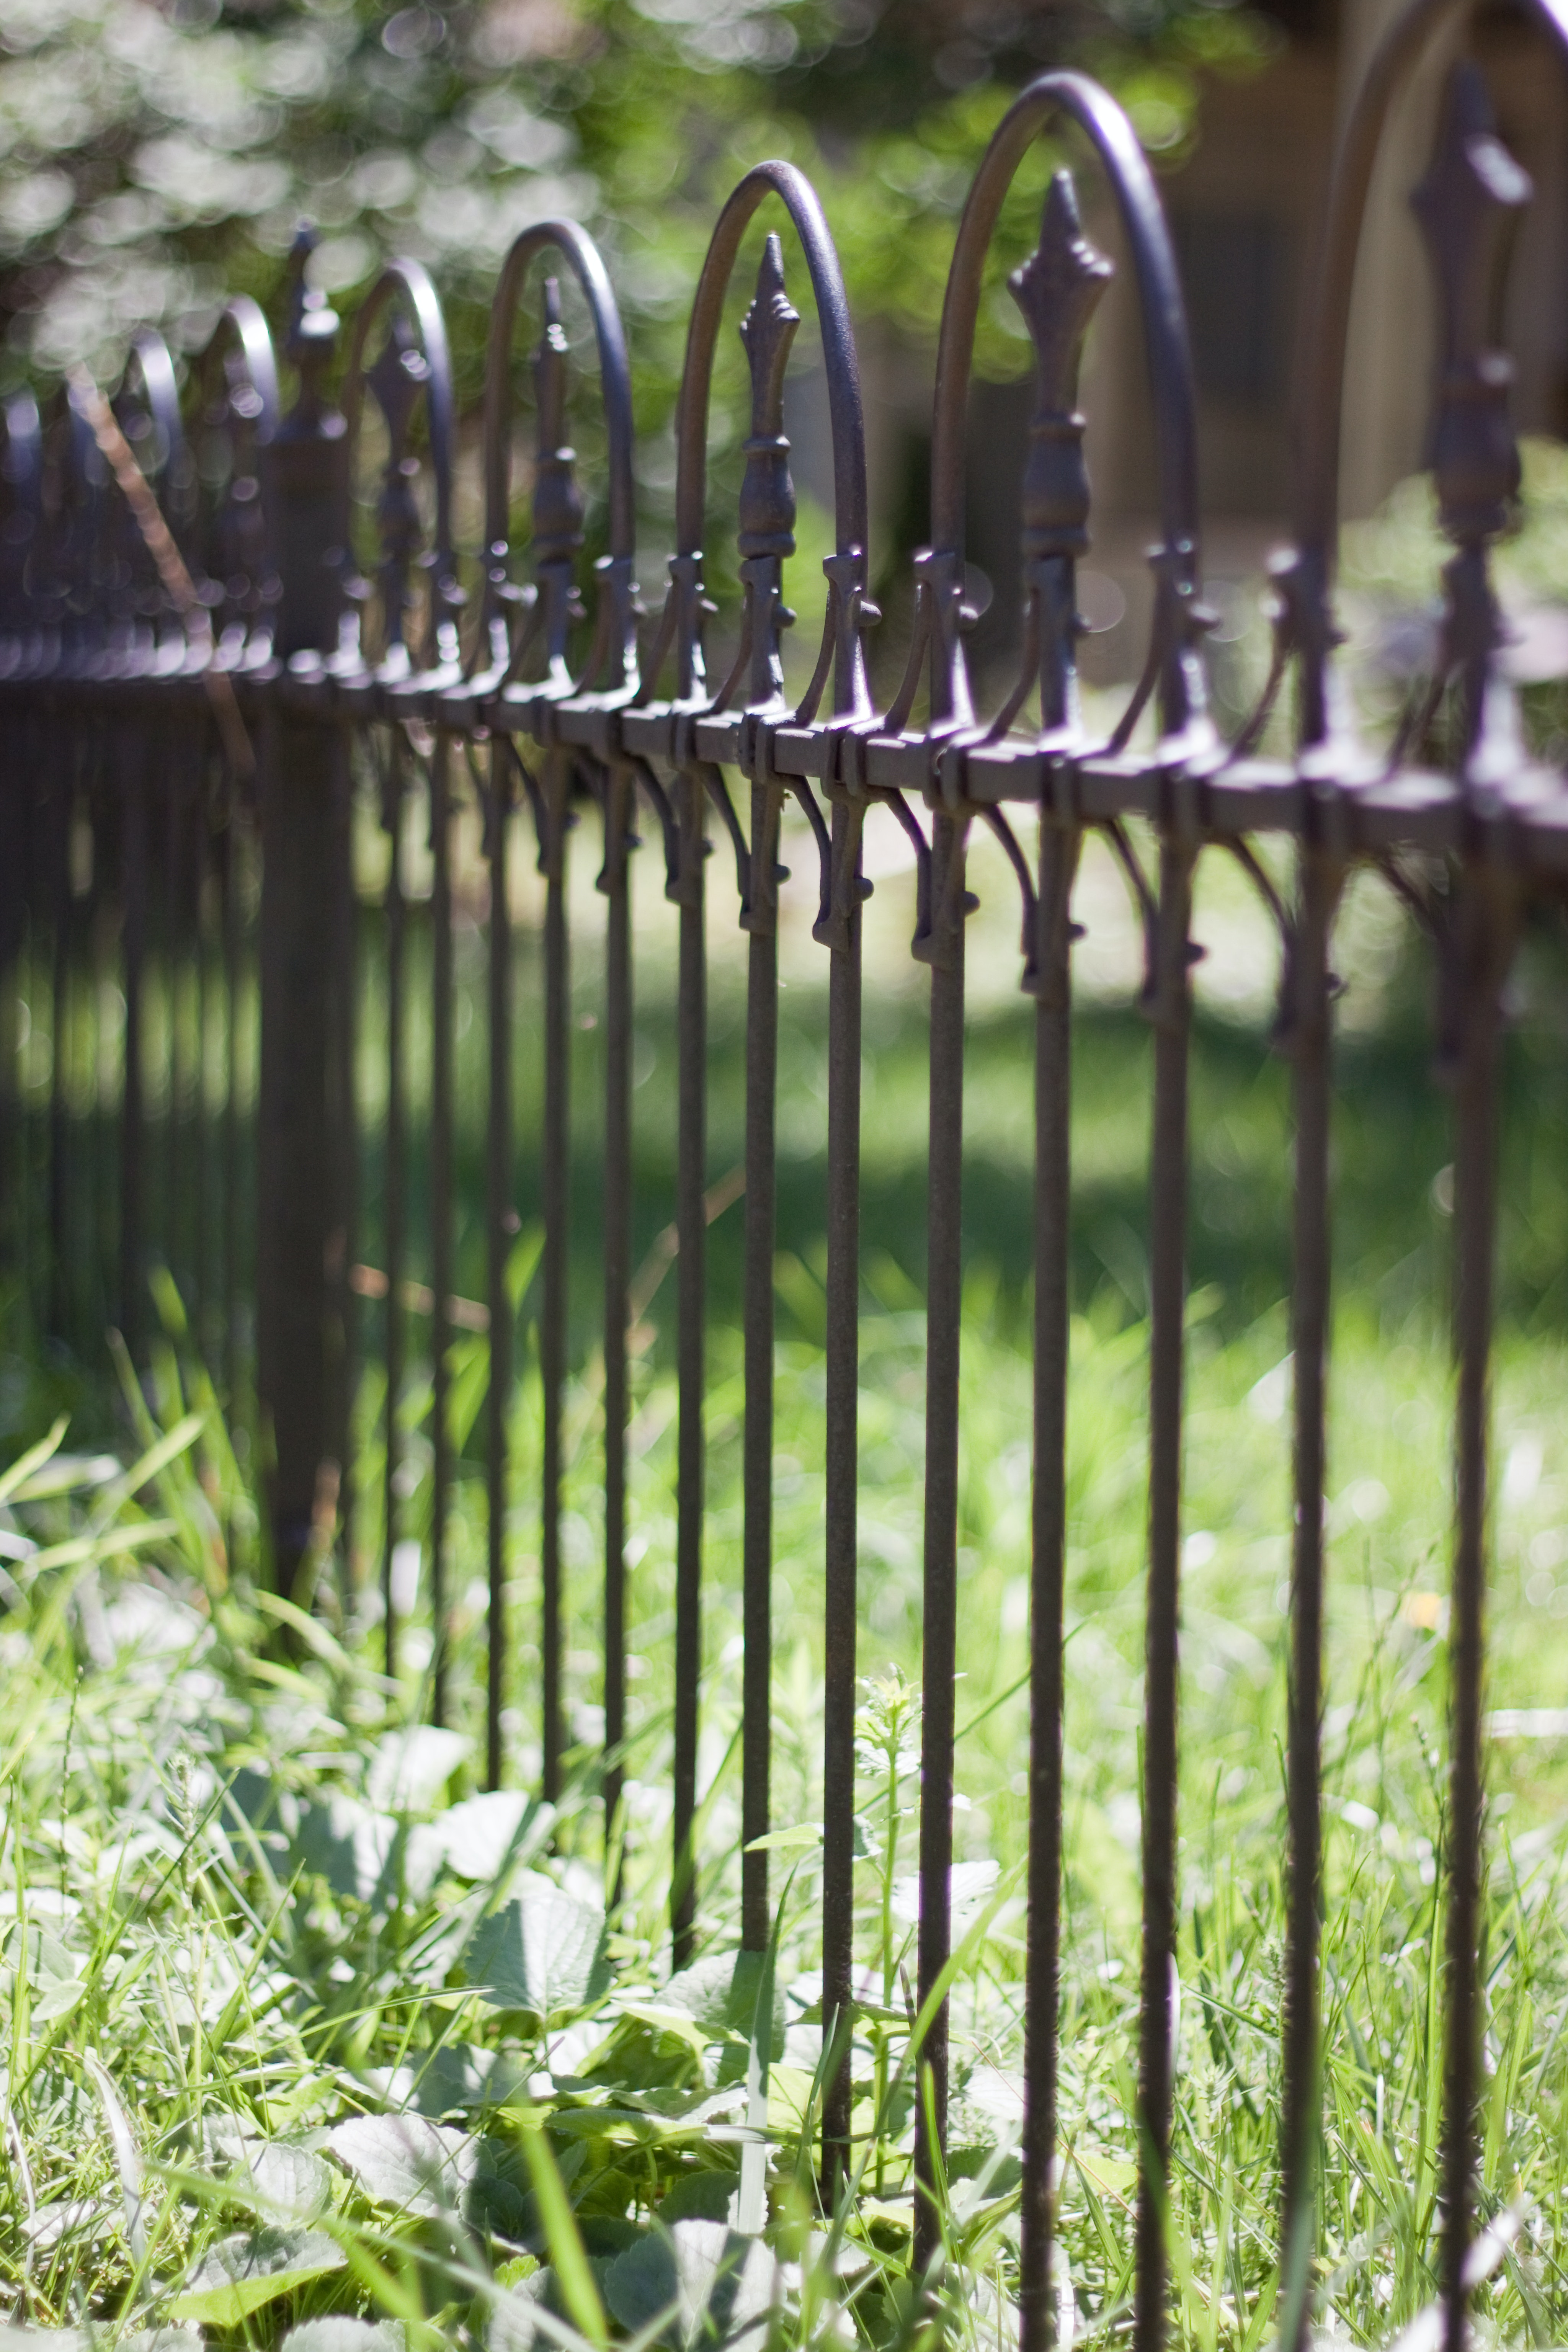 Free stock photo of fence, metal construction